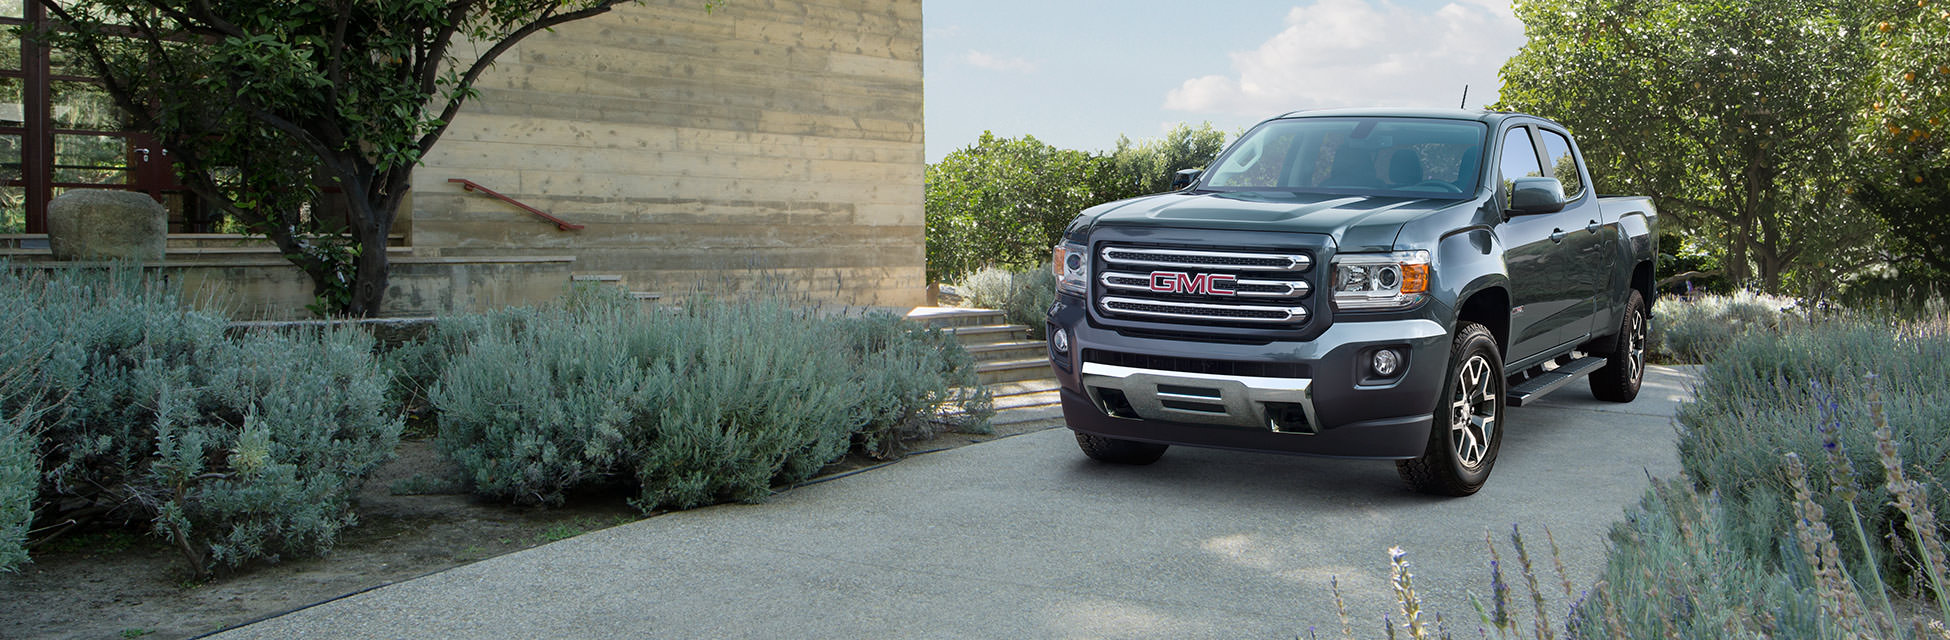 New 2017 GMC Canyon Only Starting at $27,950